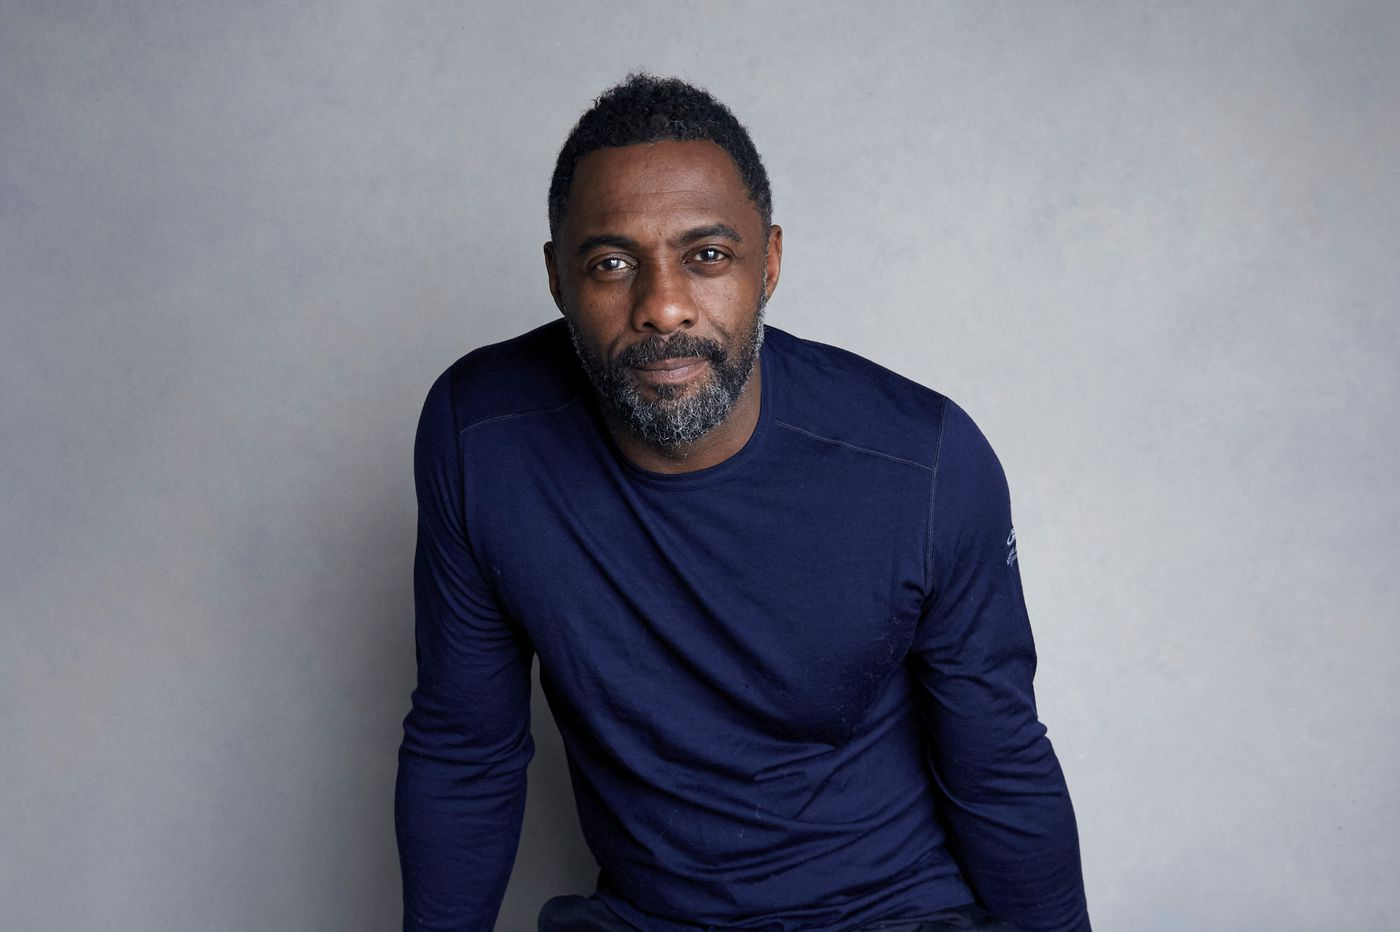 'Ghetto Cowboy,' starring Idris Elba, will start shooting in Philly soon